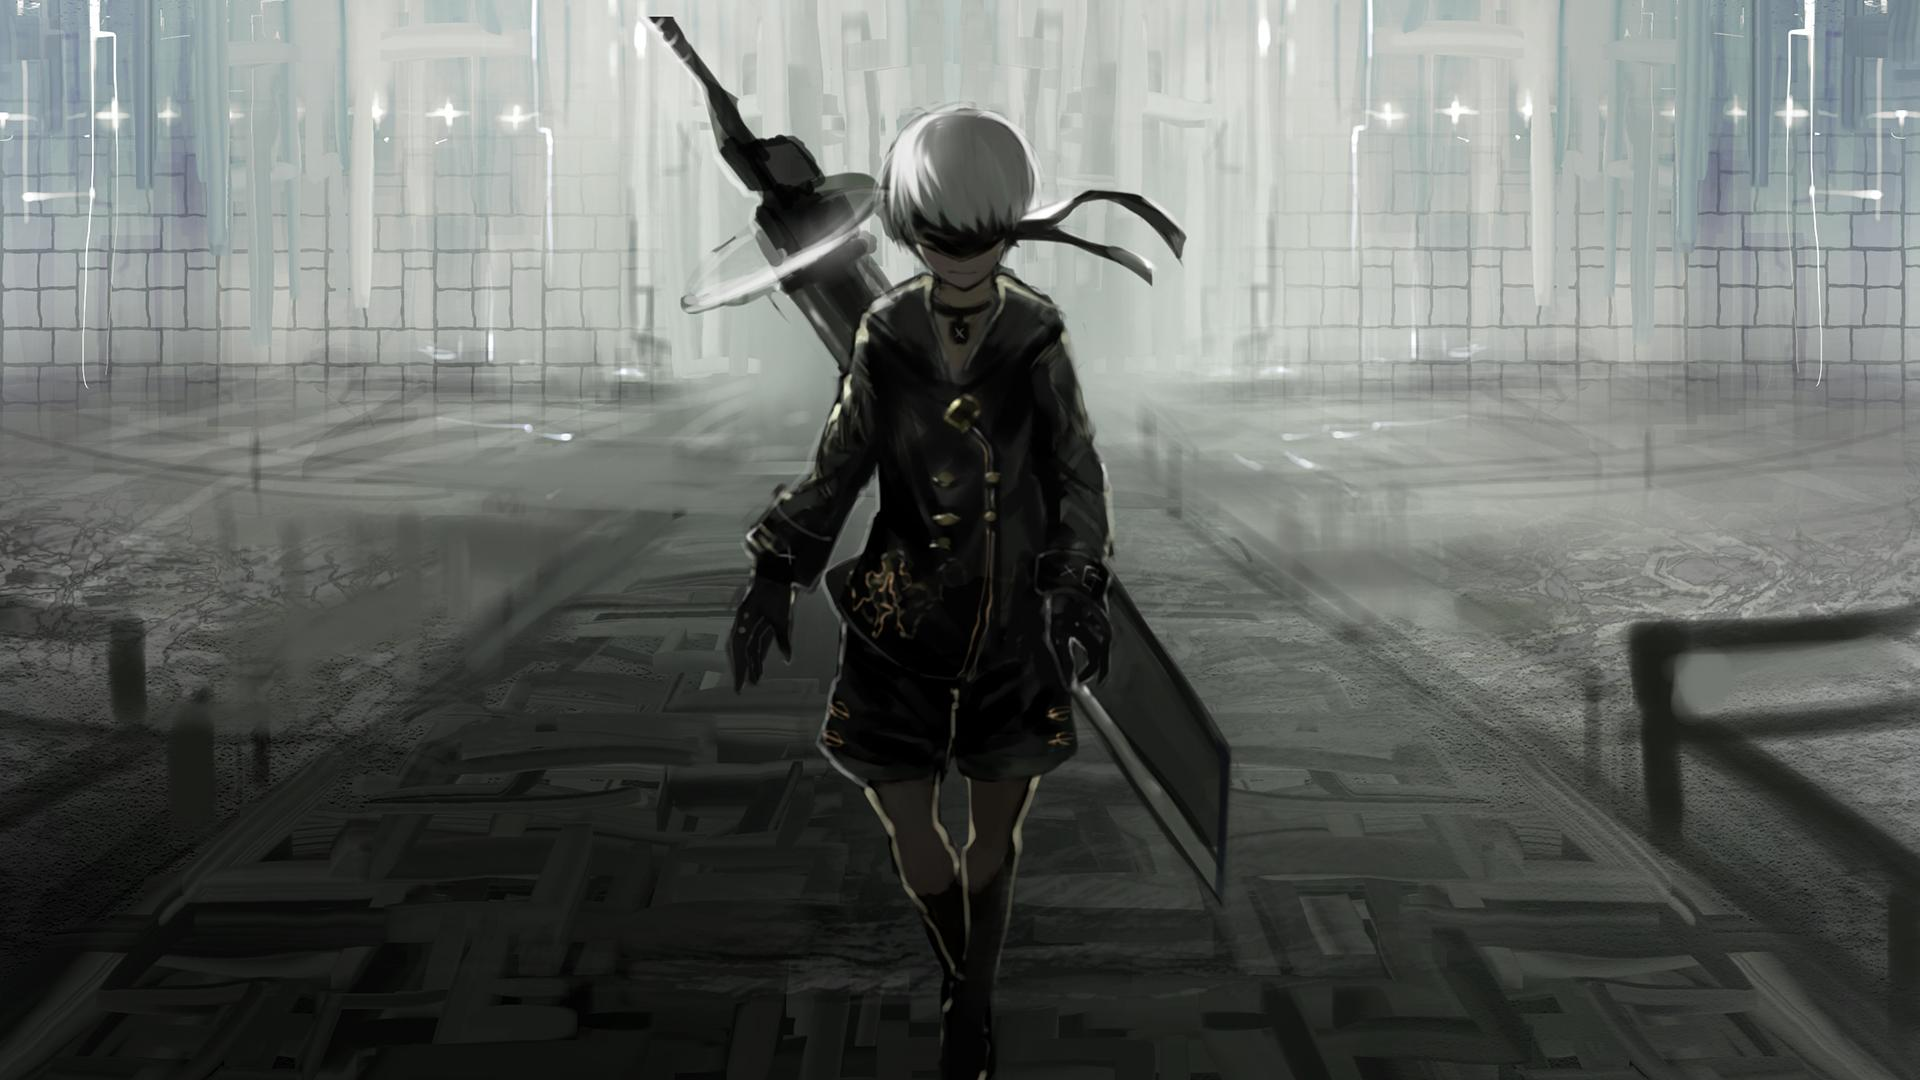 NieR: Automata Wallpapers, Pictures, Image